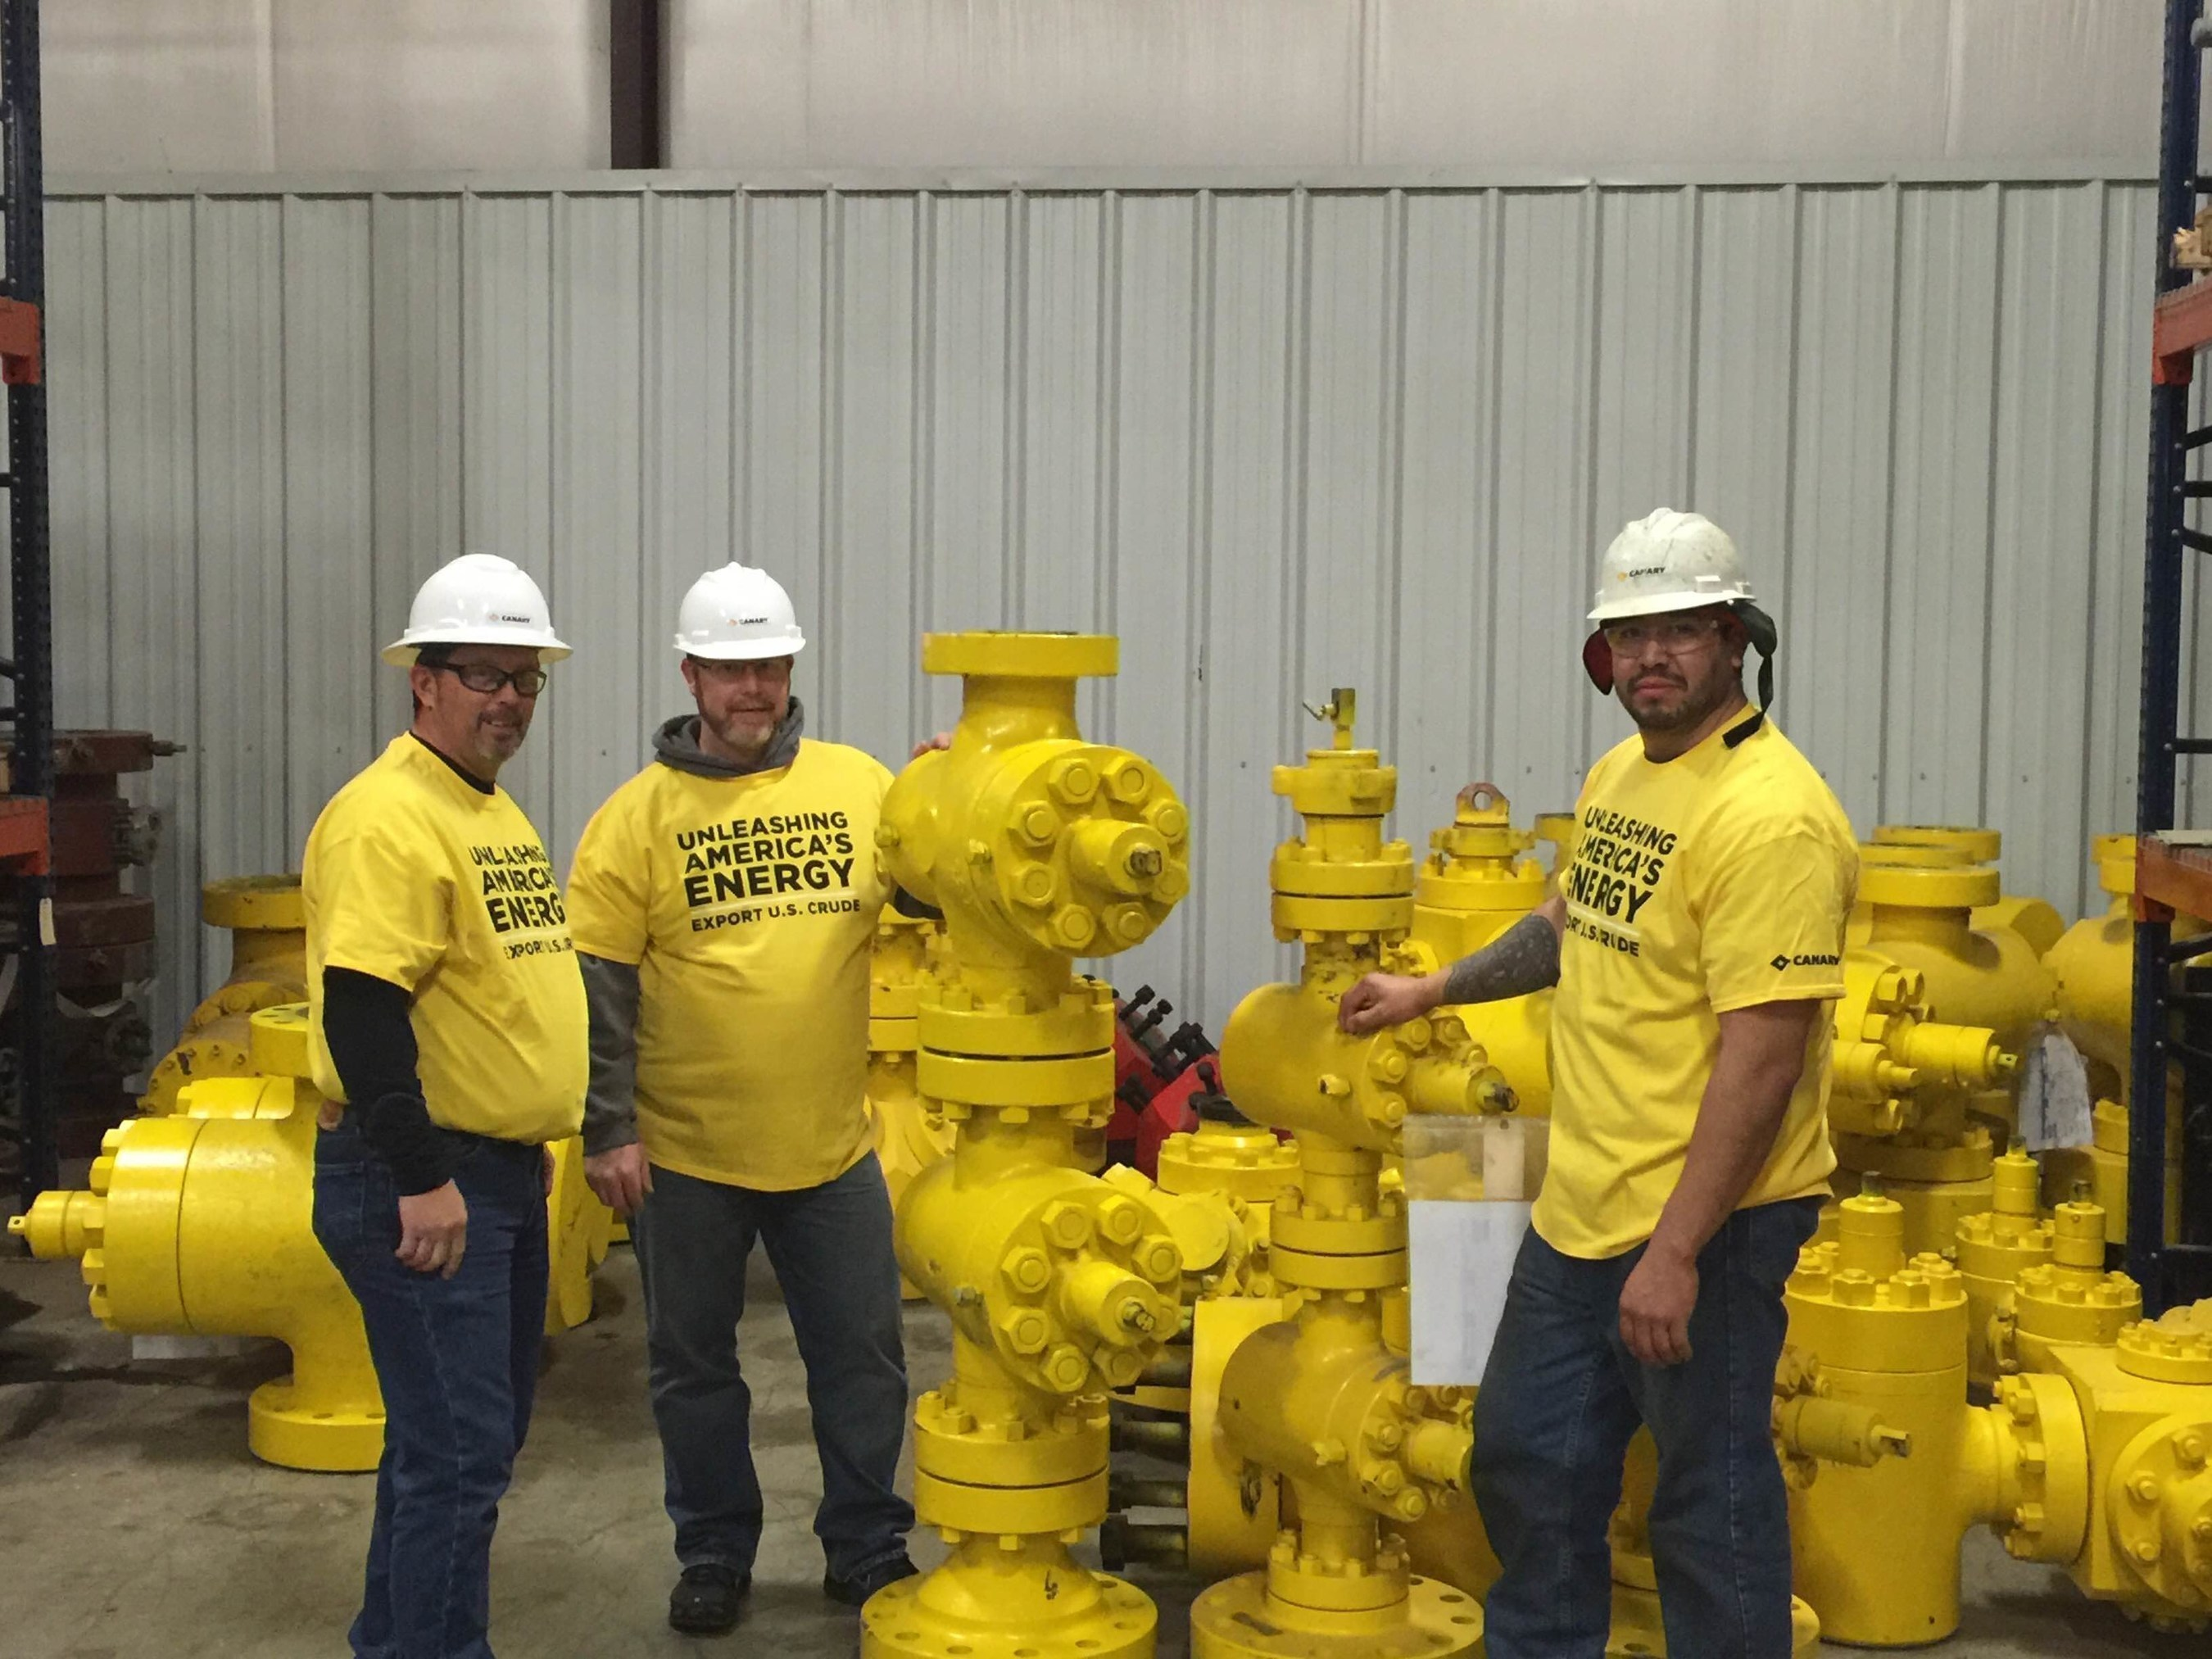 Canary employees supporting the effort to lift the crude oil export ban.